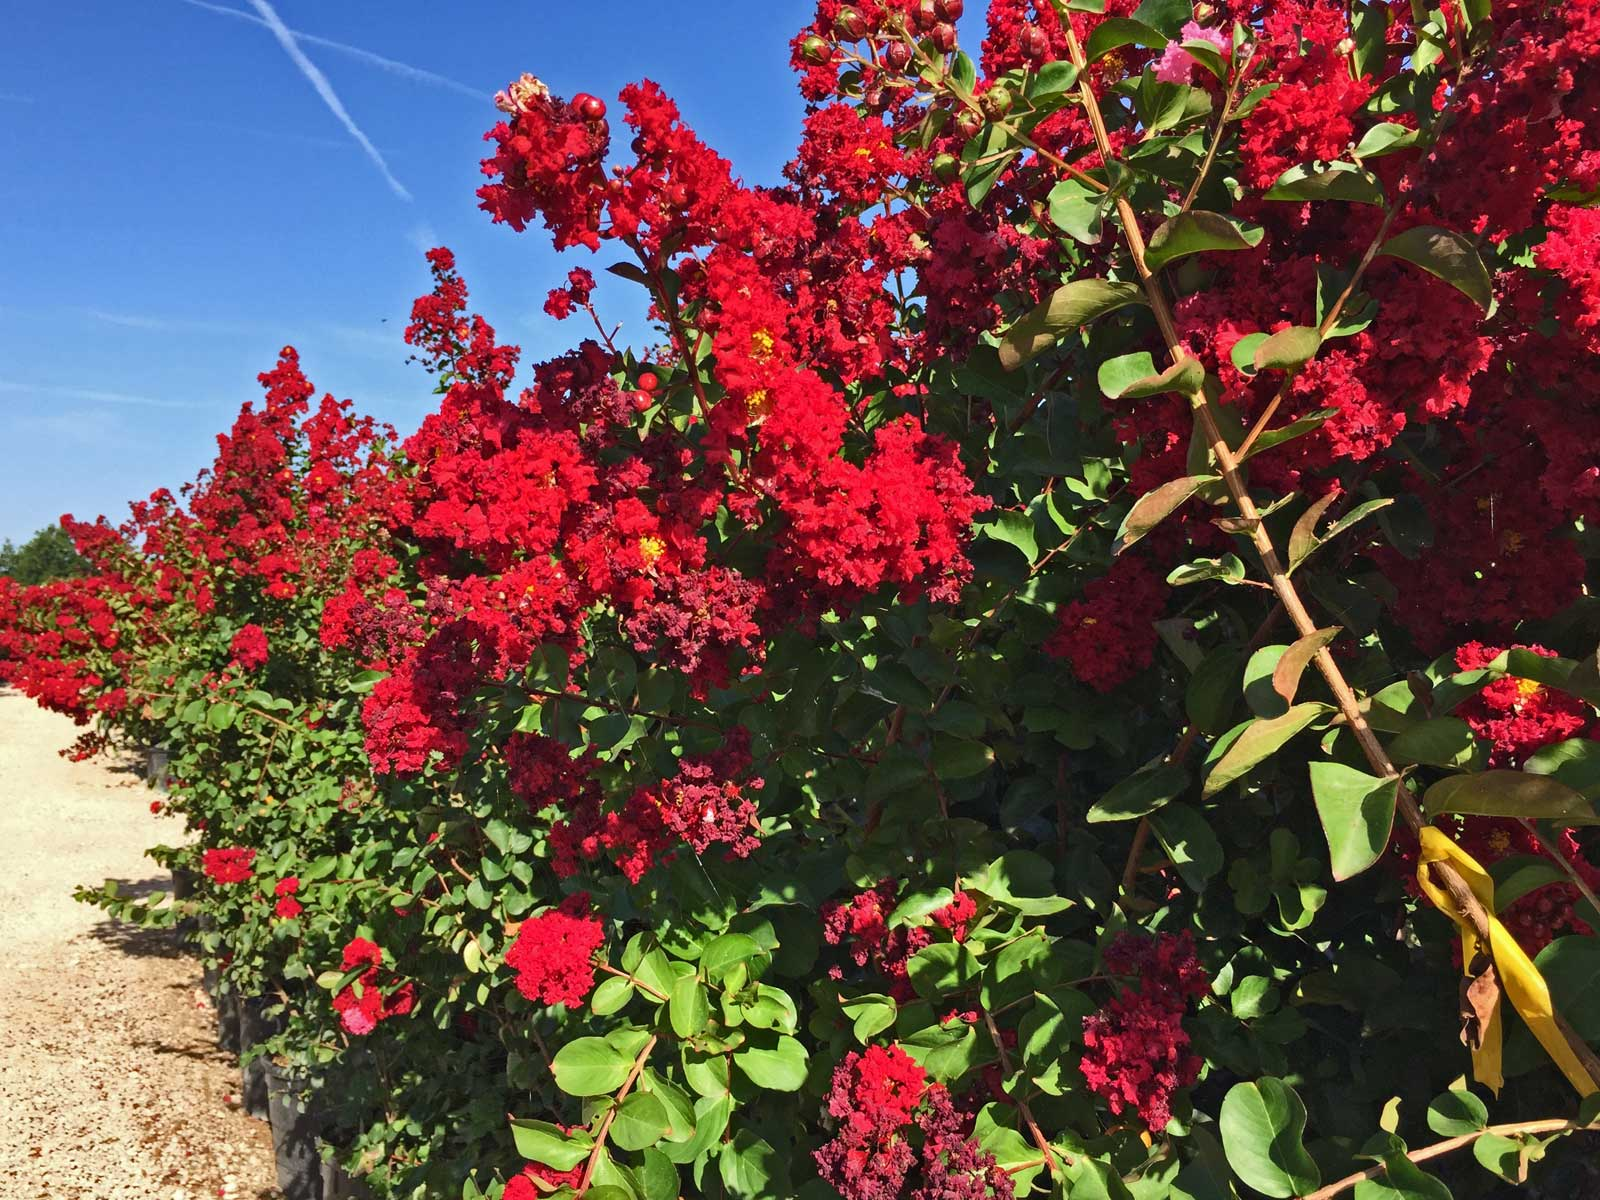 Crape Myrtle 'Dynamite' - A vibrant and deep red color blooms.